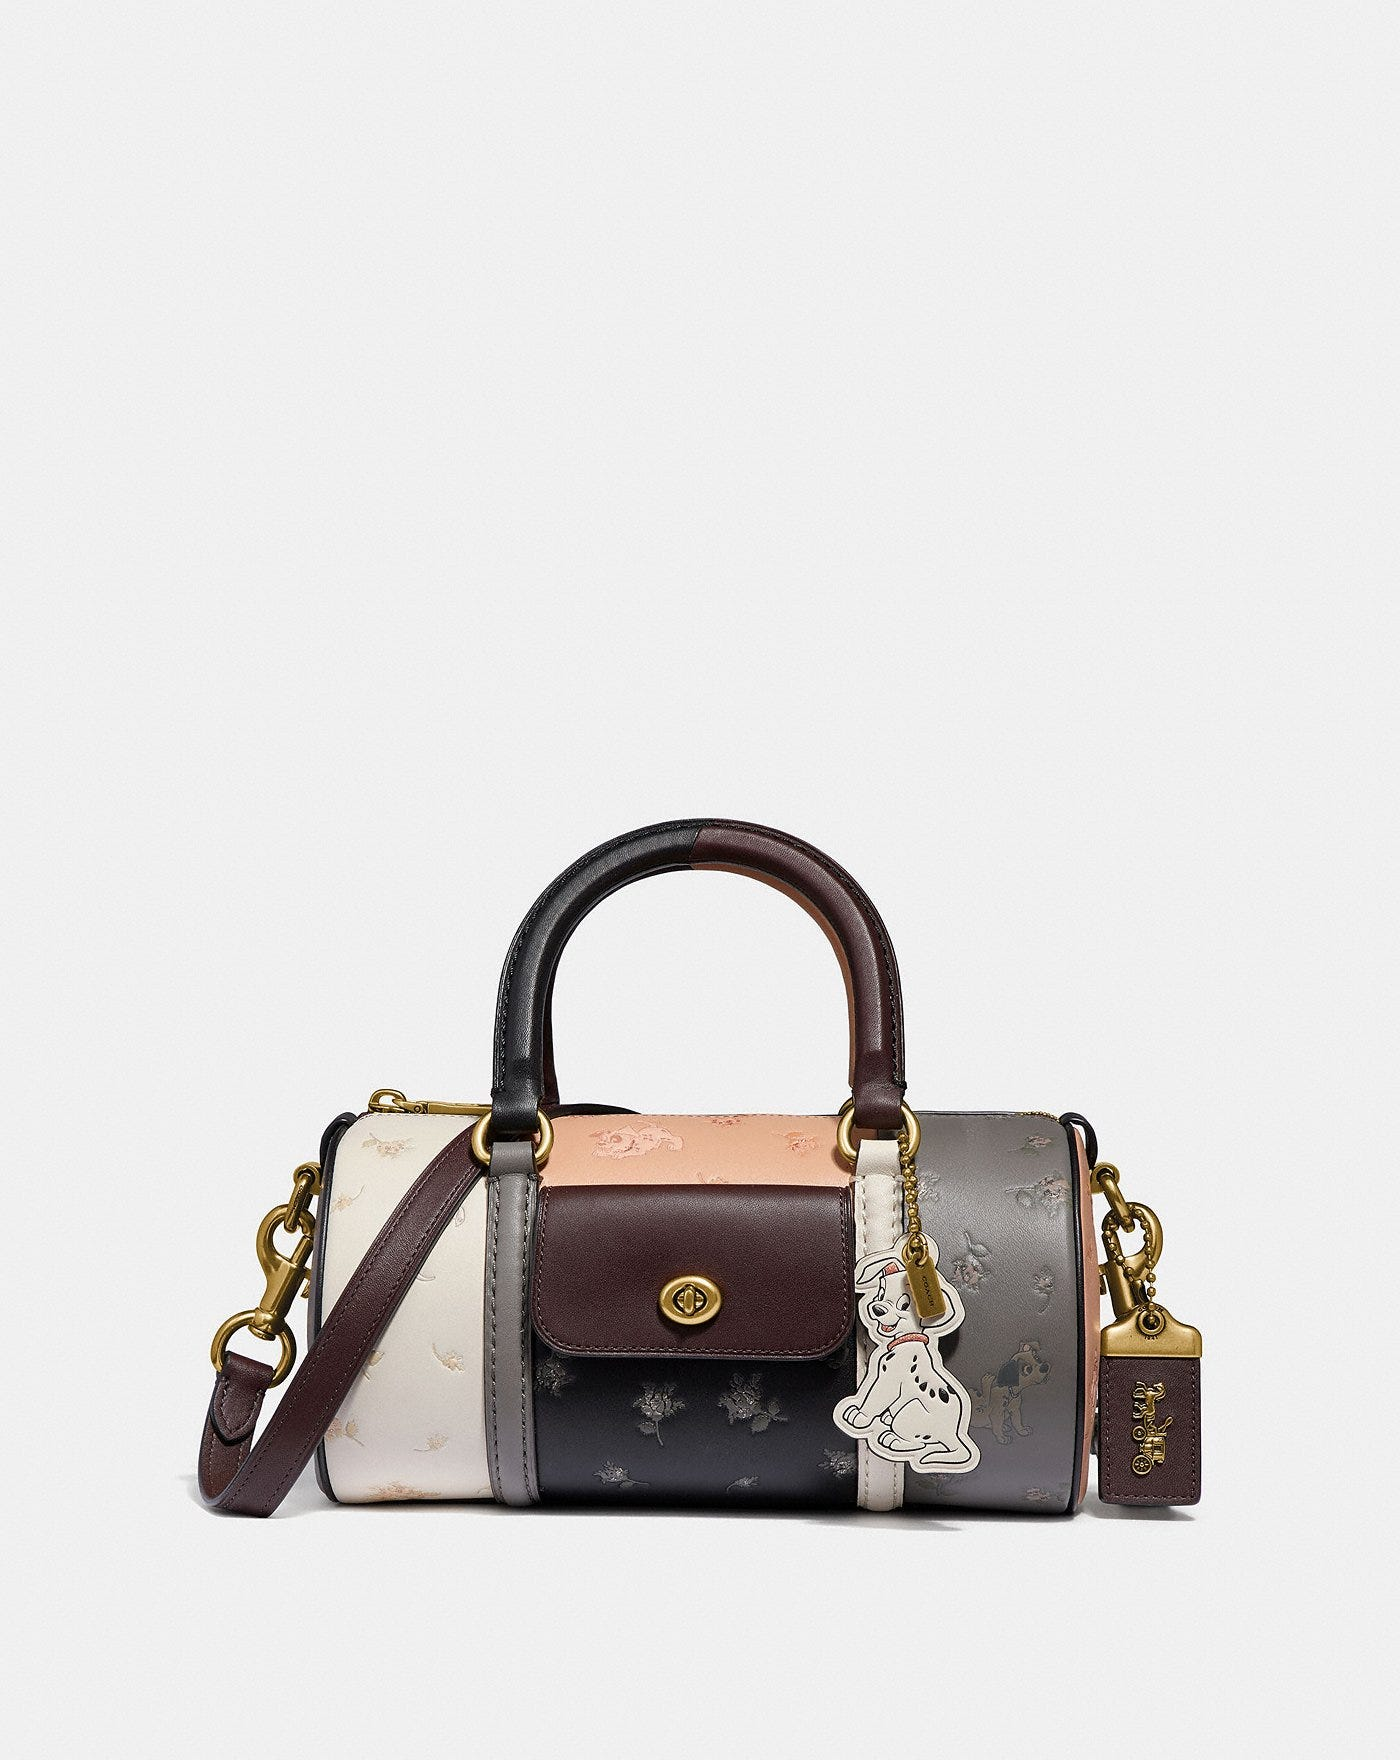 34631fd0d656a Coach x Disney Fashion Week Collection Available To Buy